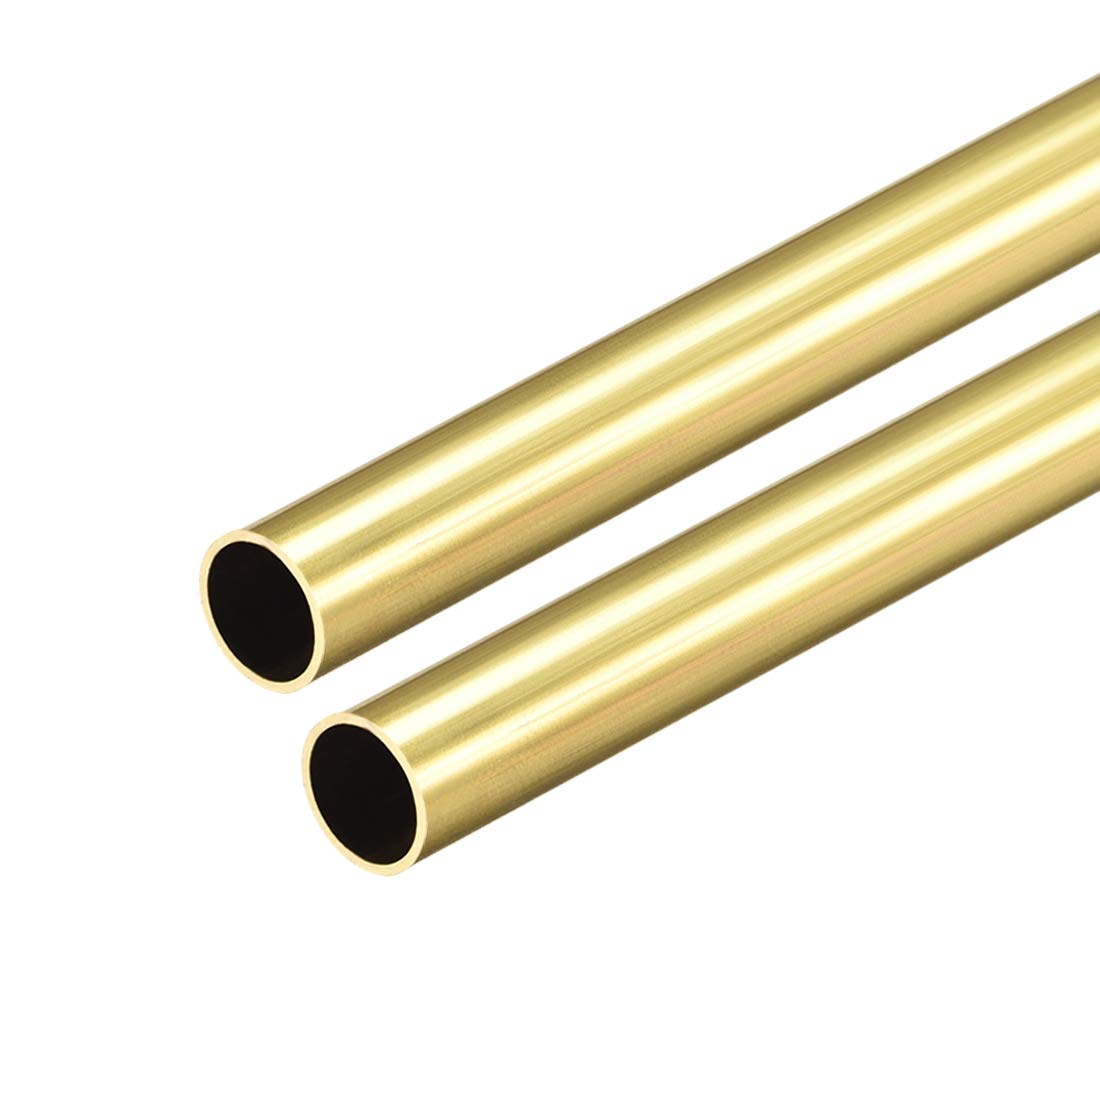 uxcell Brass Round Tube, 300mm Length 9.5mm OD 0.5mm Wall Thickness, Seamless Straight Pipe Tubing 2 Pcs